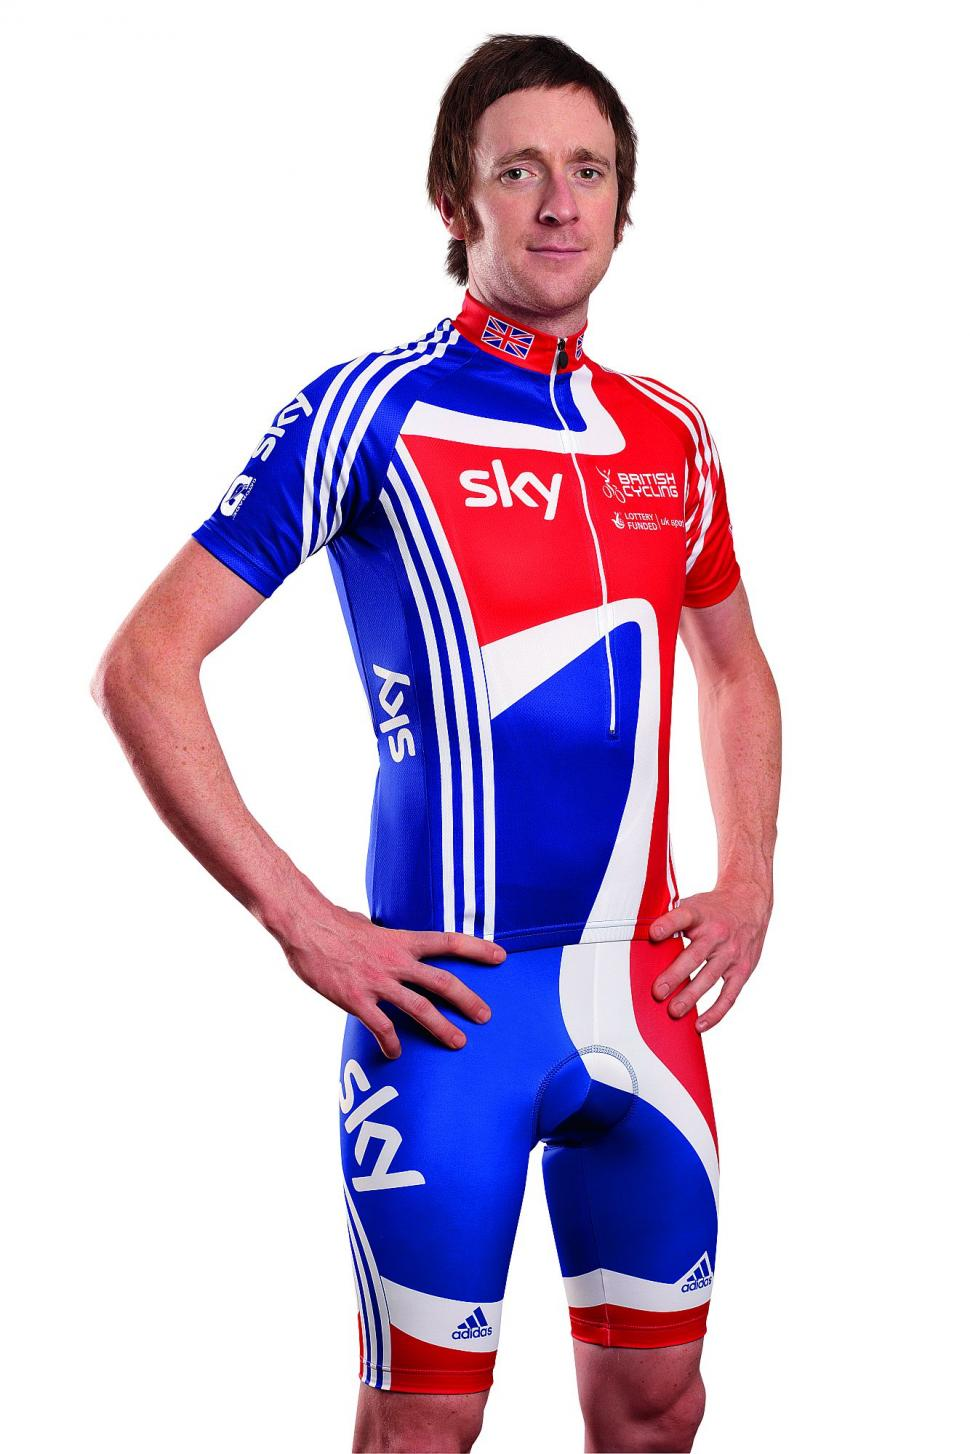 bradley_wiggins_mg_9096_v2_cmyk_2000px_long_edge.jpg